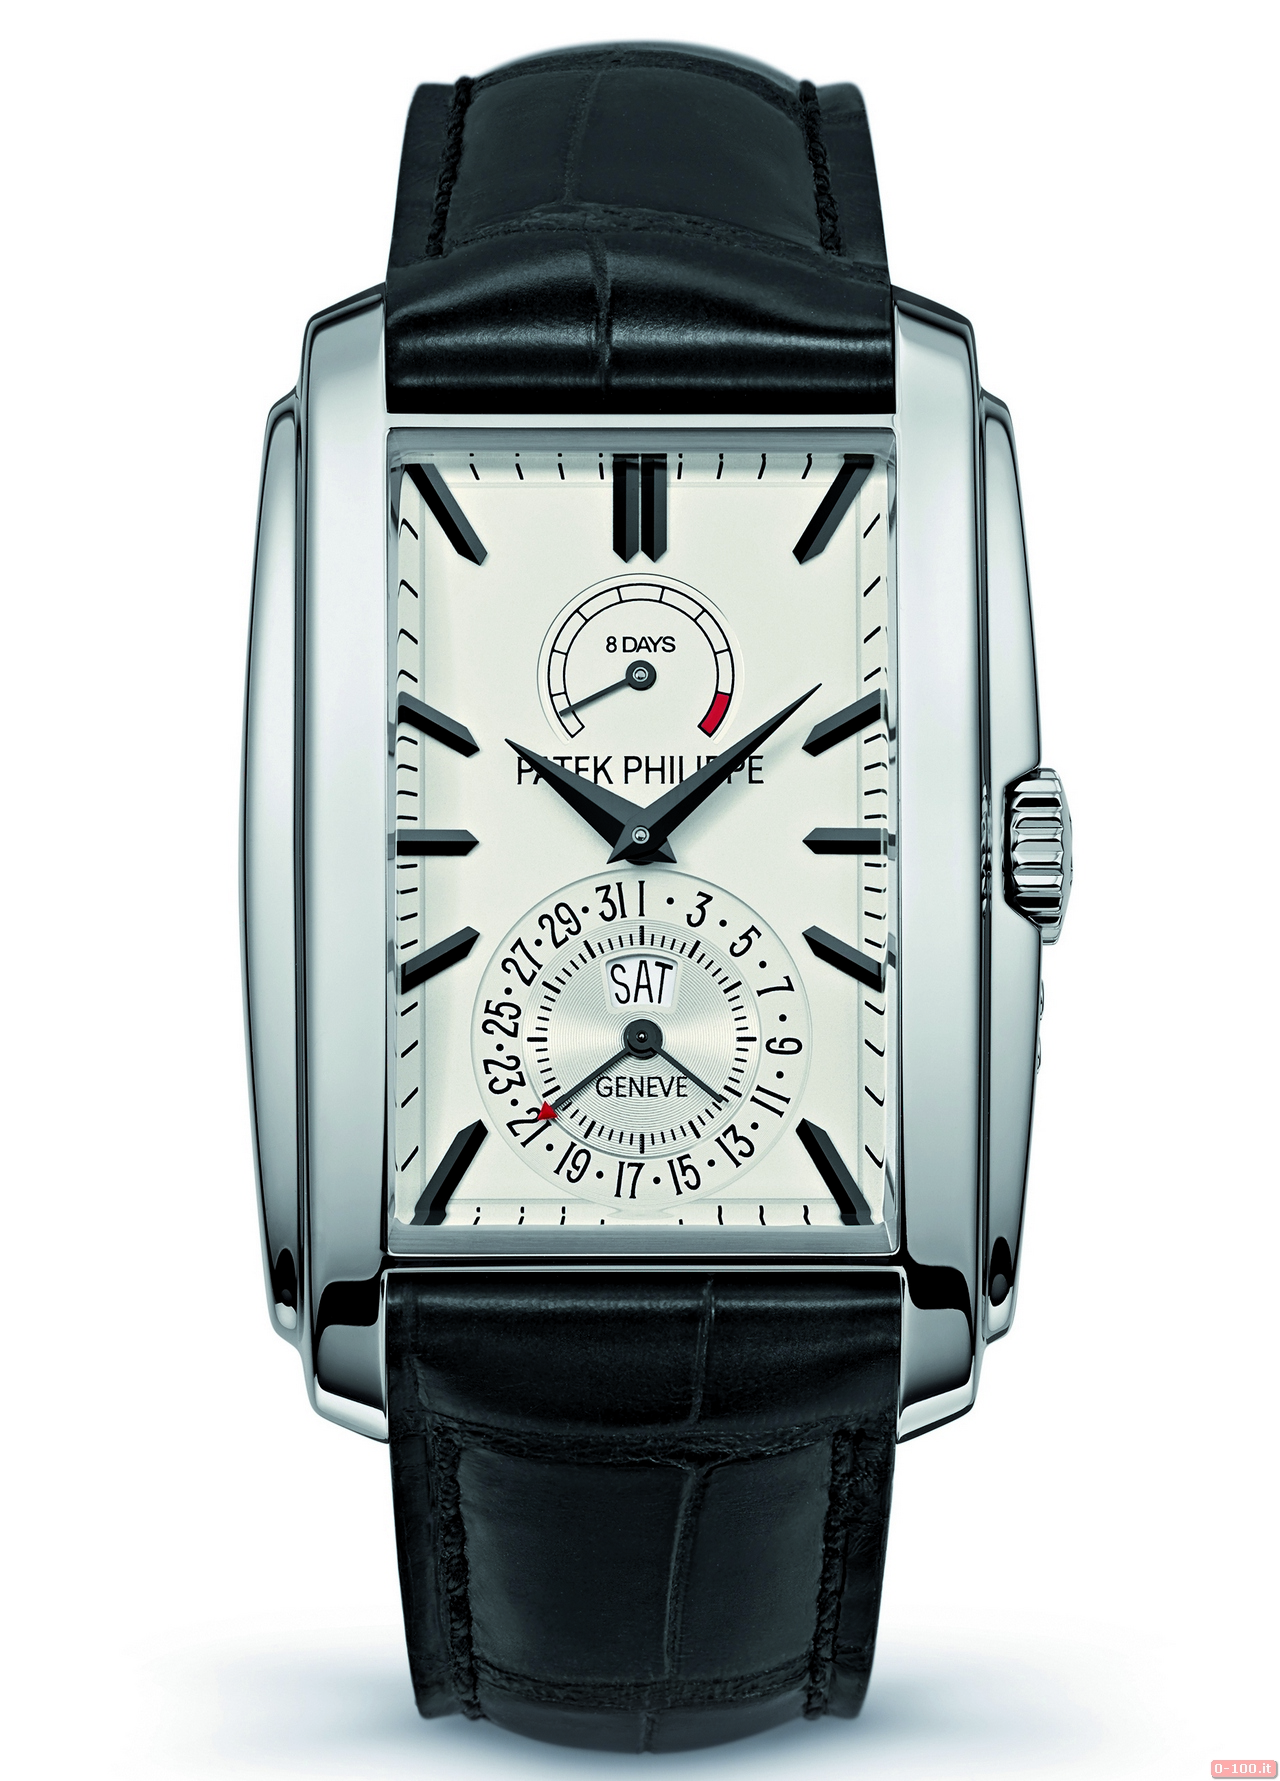 baselworld-2013-patek-philippe-gondolo-8-days-day-date-indication_0-100_5